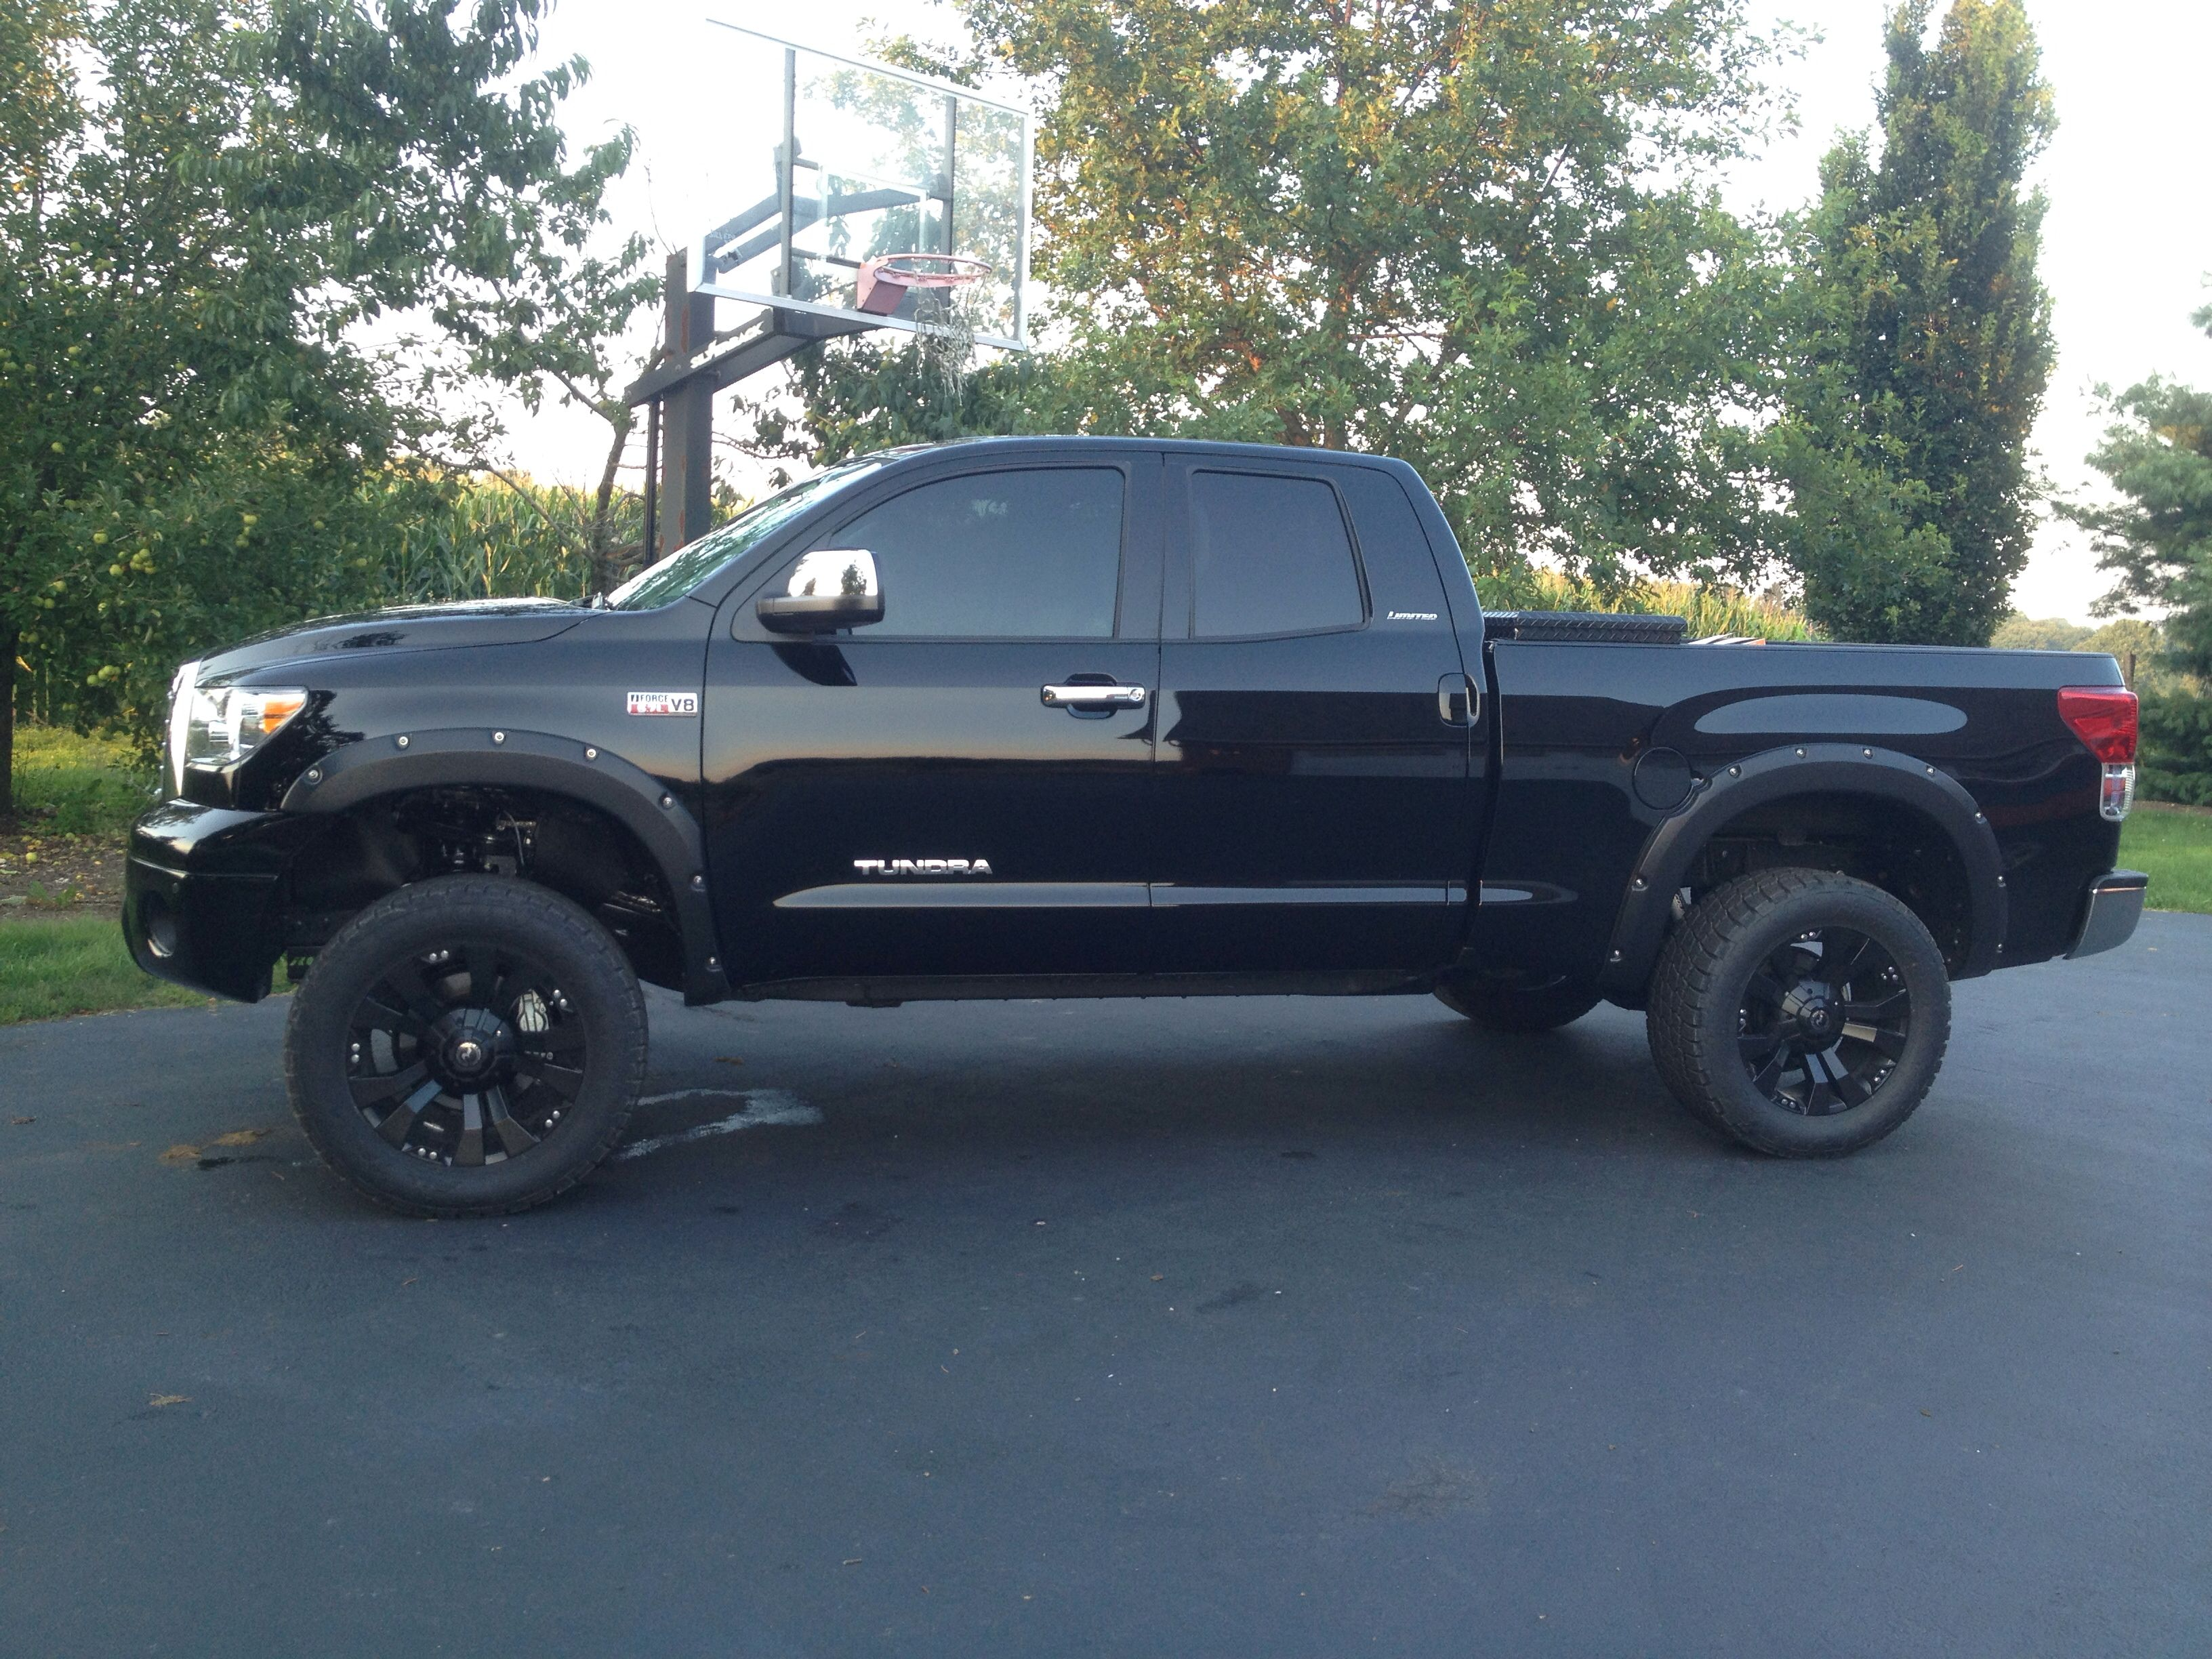 Pin By Scott Strong On Cool Lifted Tundra Toyota Tundra Lifted Toyota Tundra